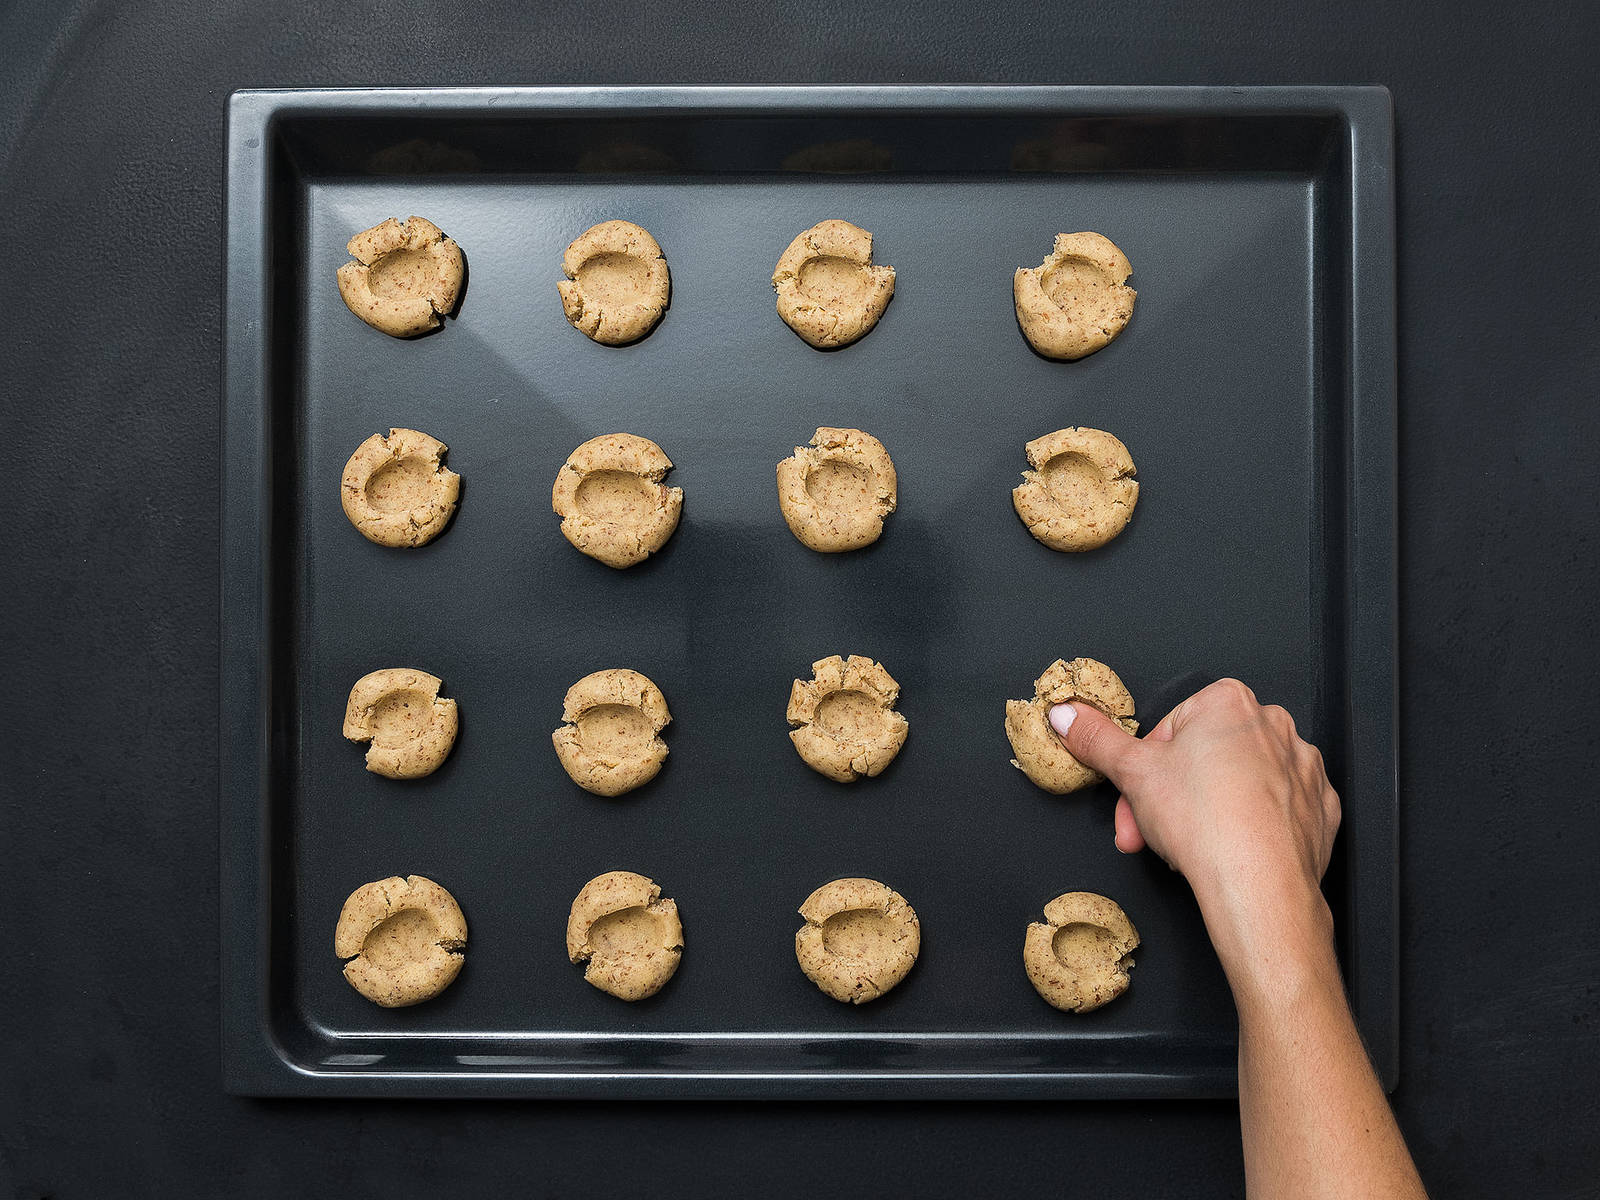 Split the dough into balls the size of a large walnut and place on a lined baking sheet. Lightly flatten the balls and, using the end of a cooking spoon or your thumb, create a small well in the center of each cookie.